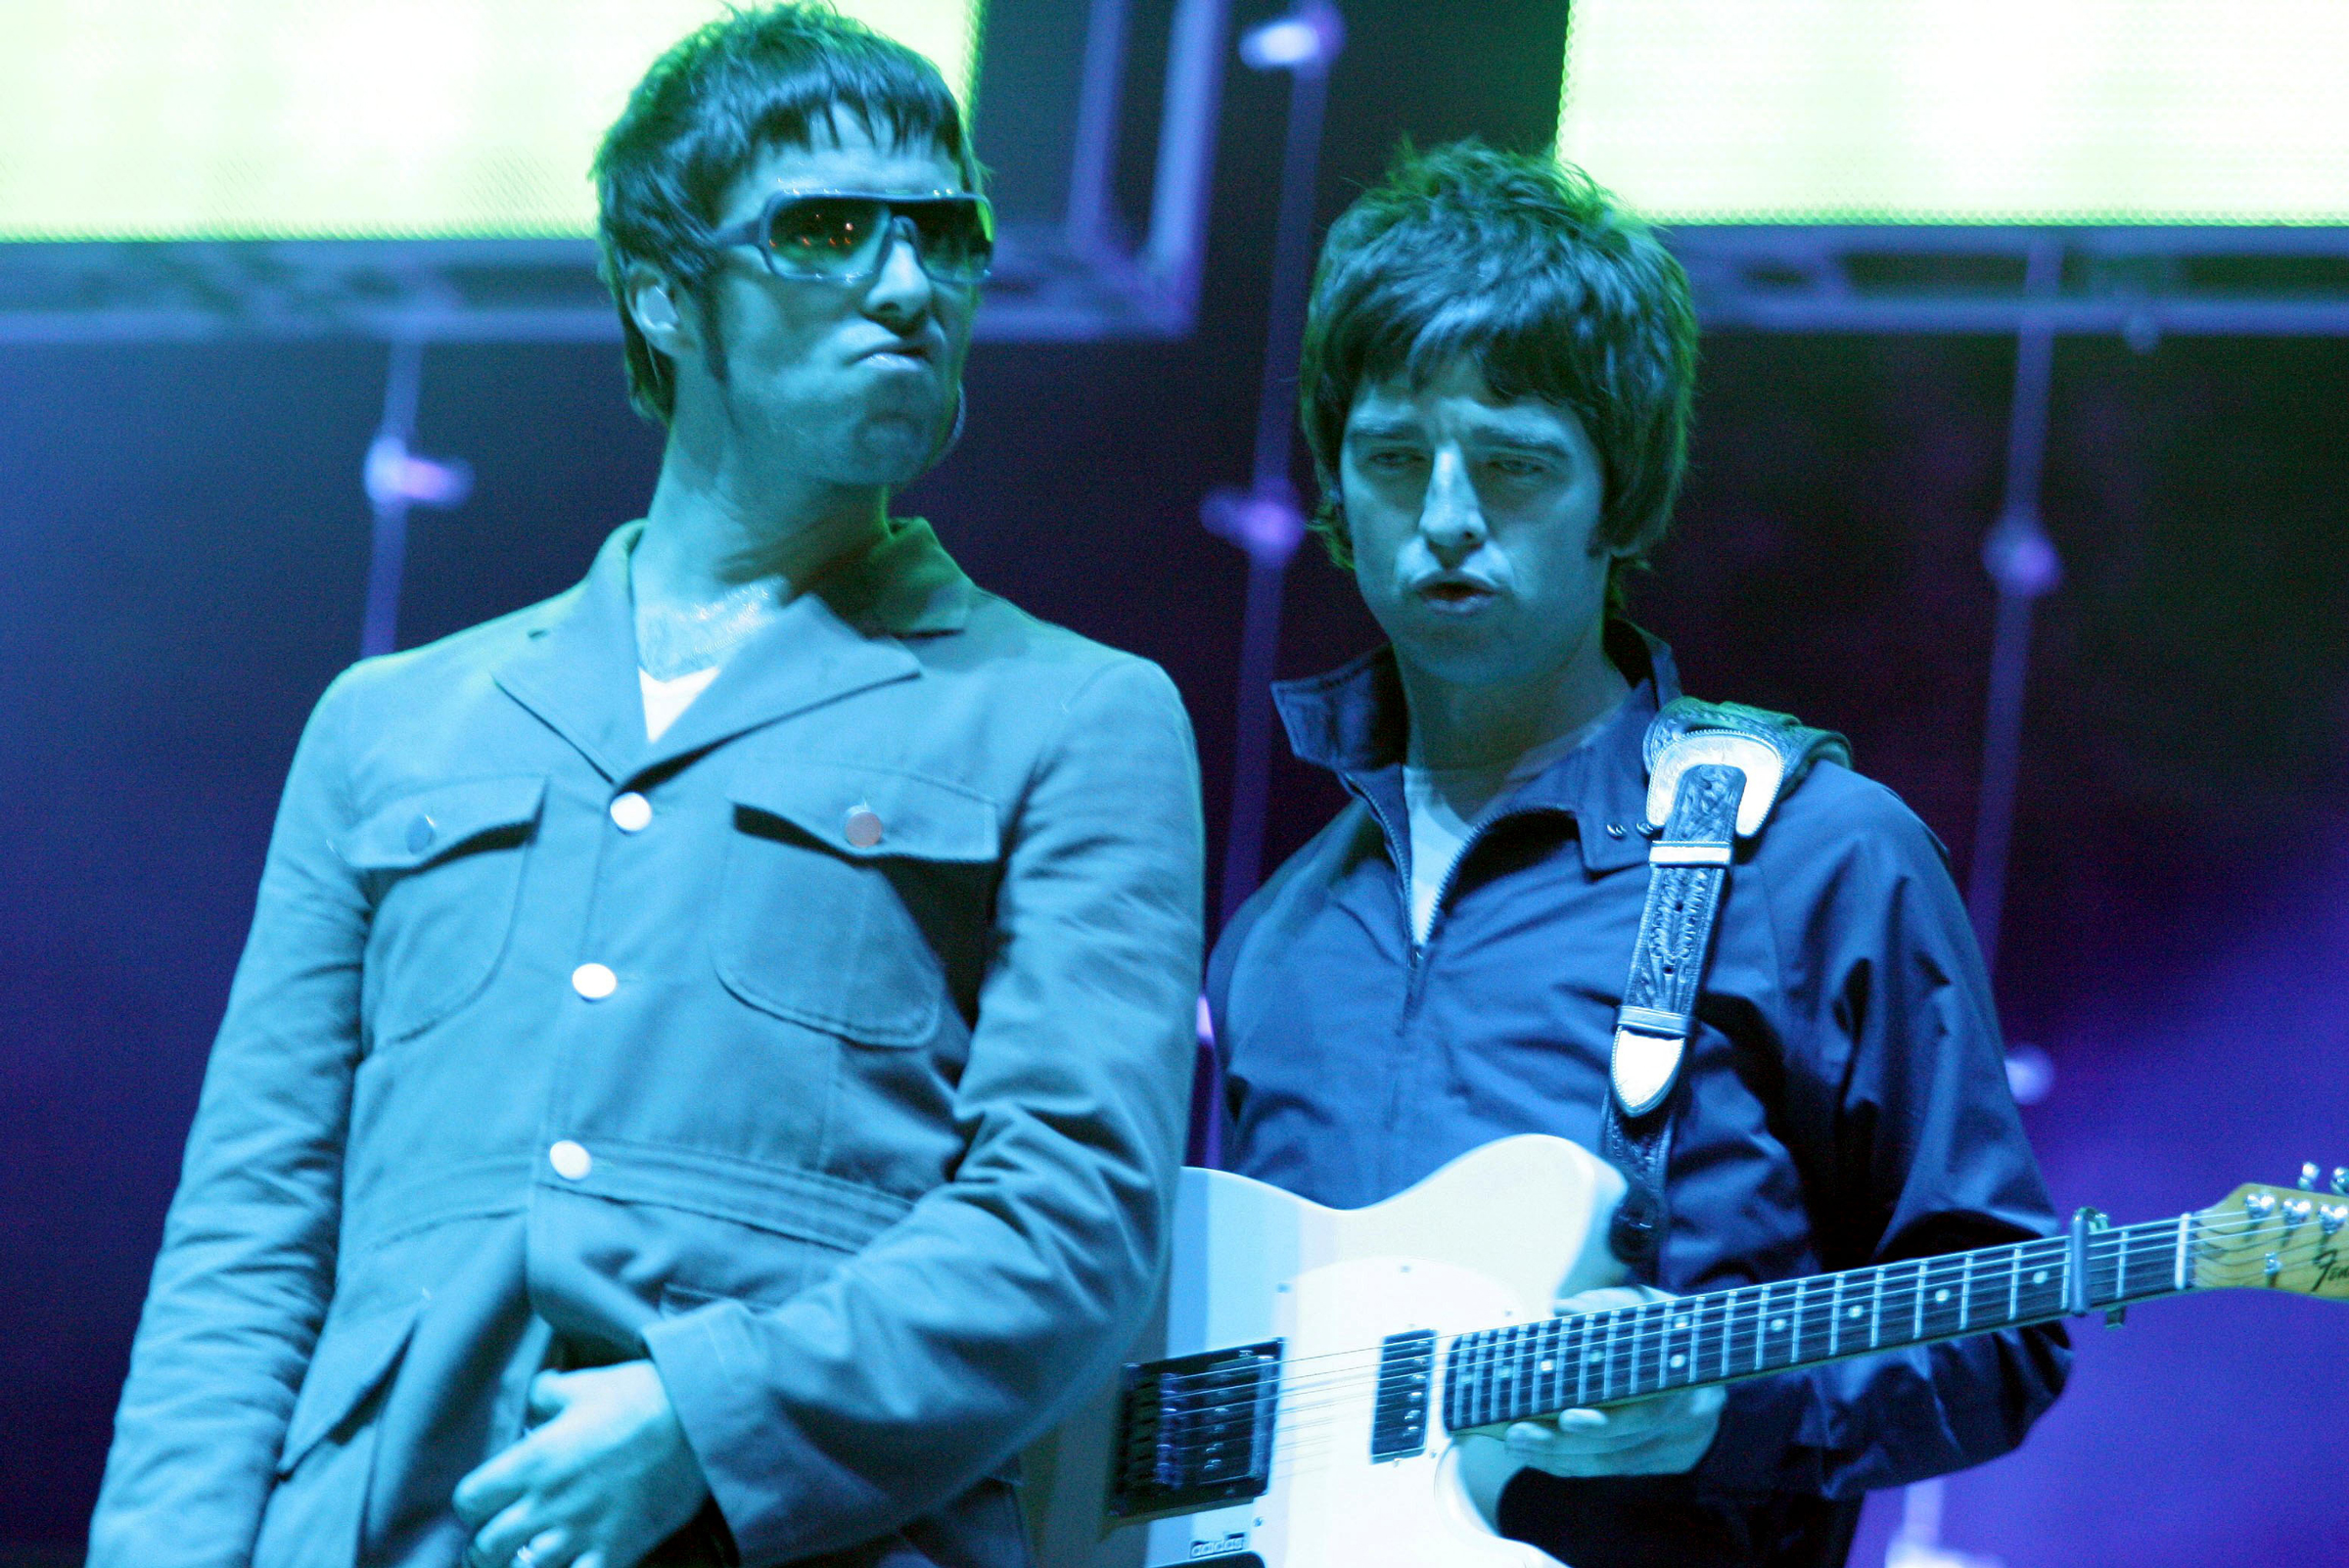 Liam Gallagher and Noel Gallagher perform at V Festival on August 21st, 2005.